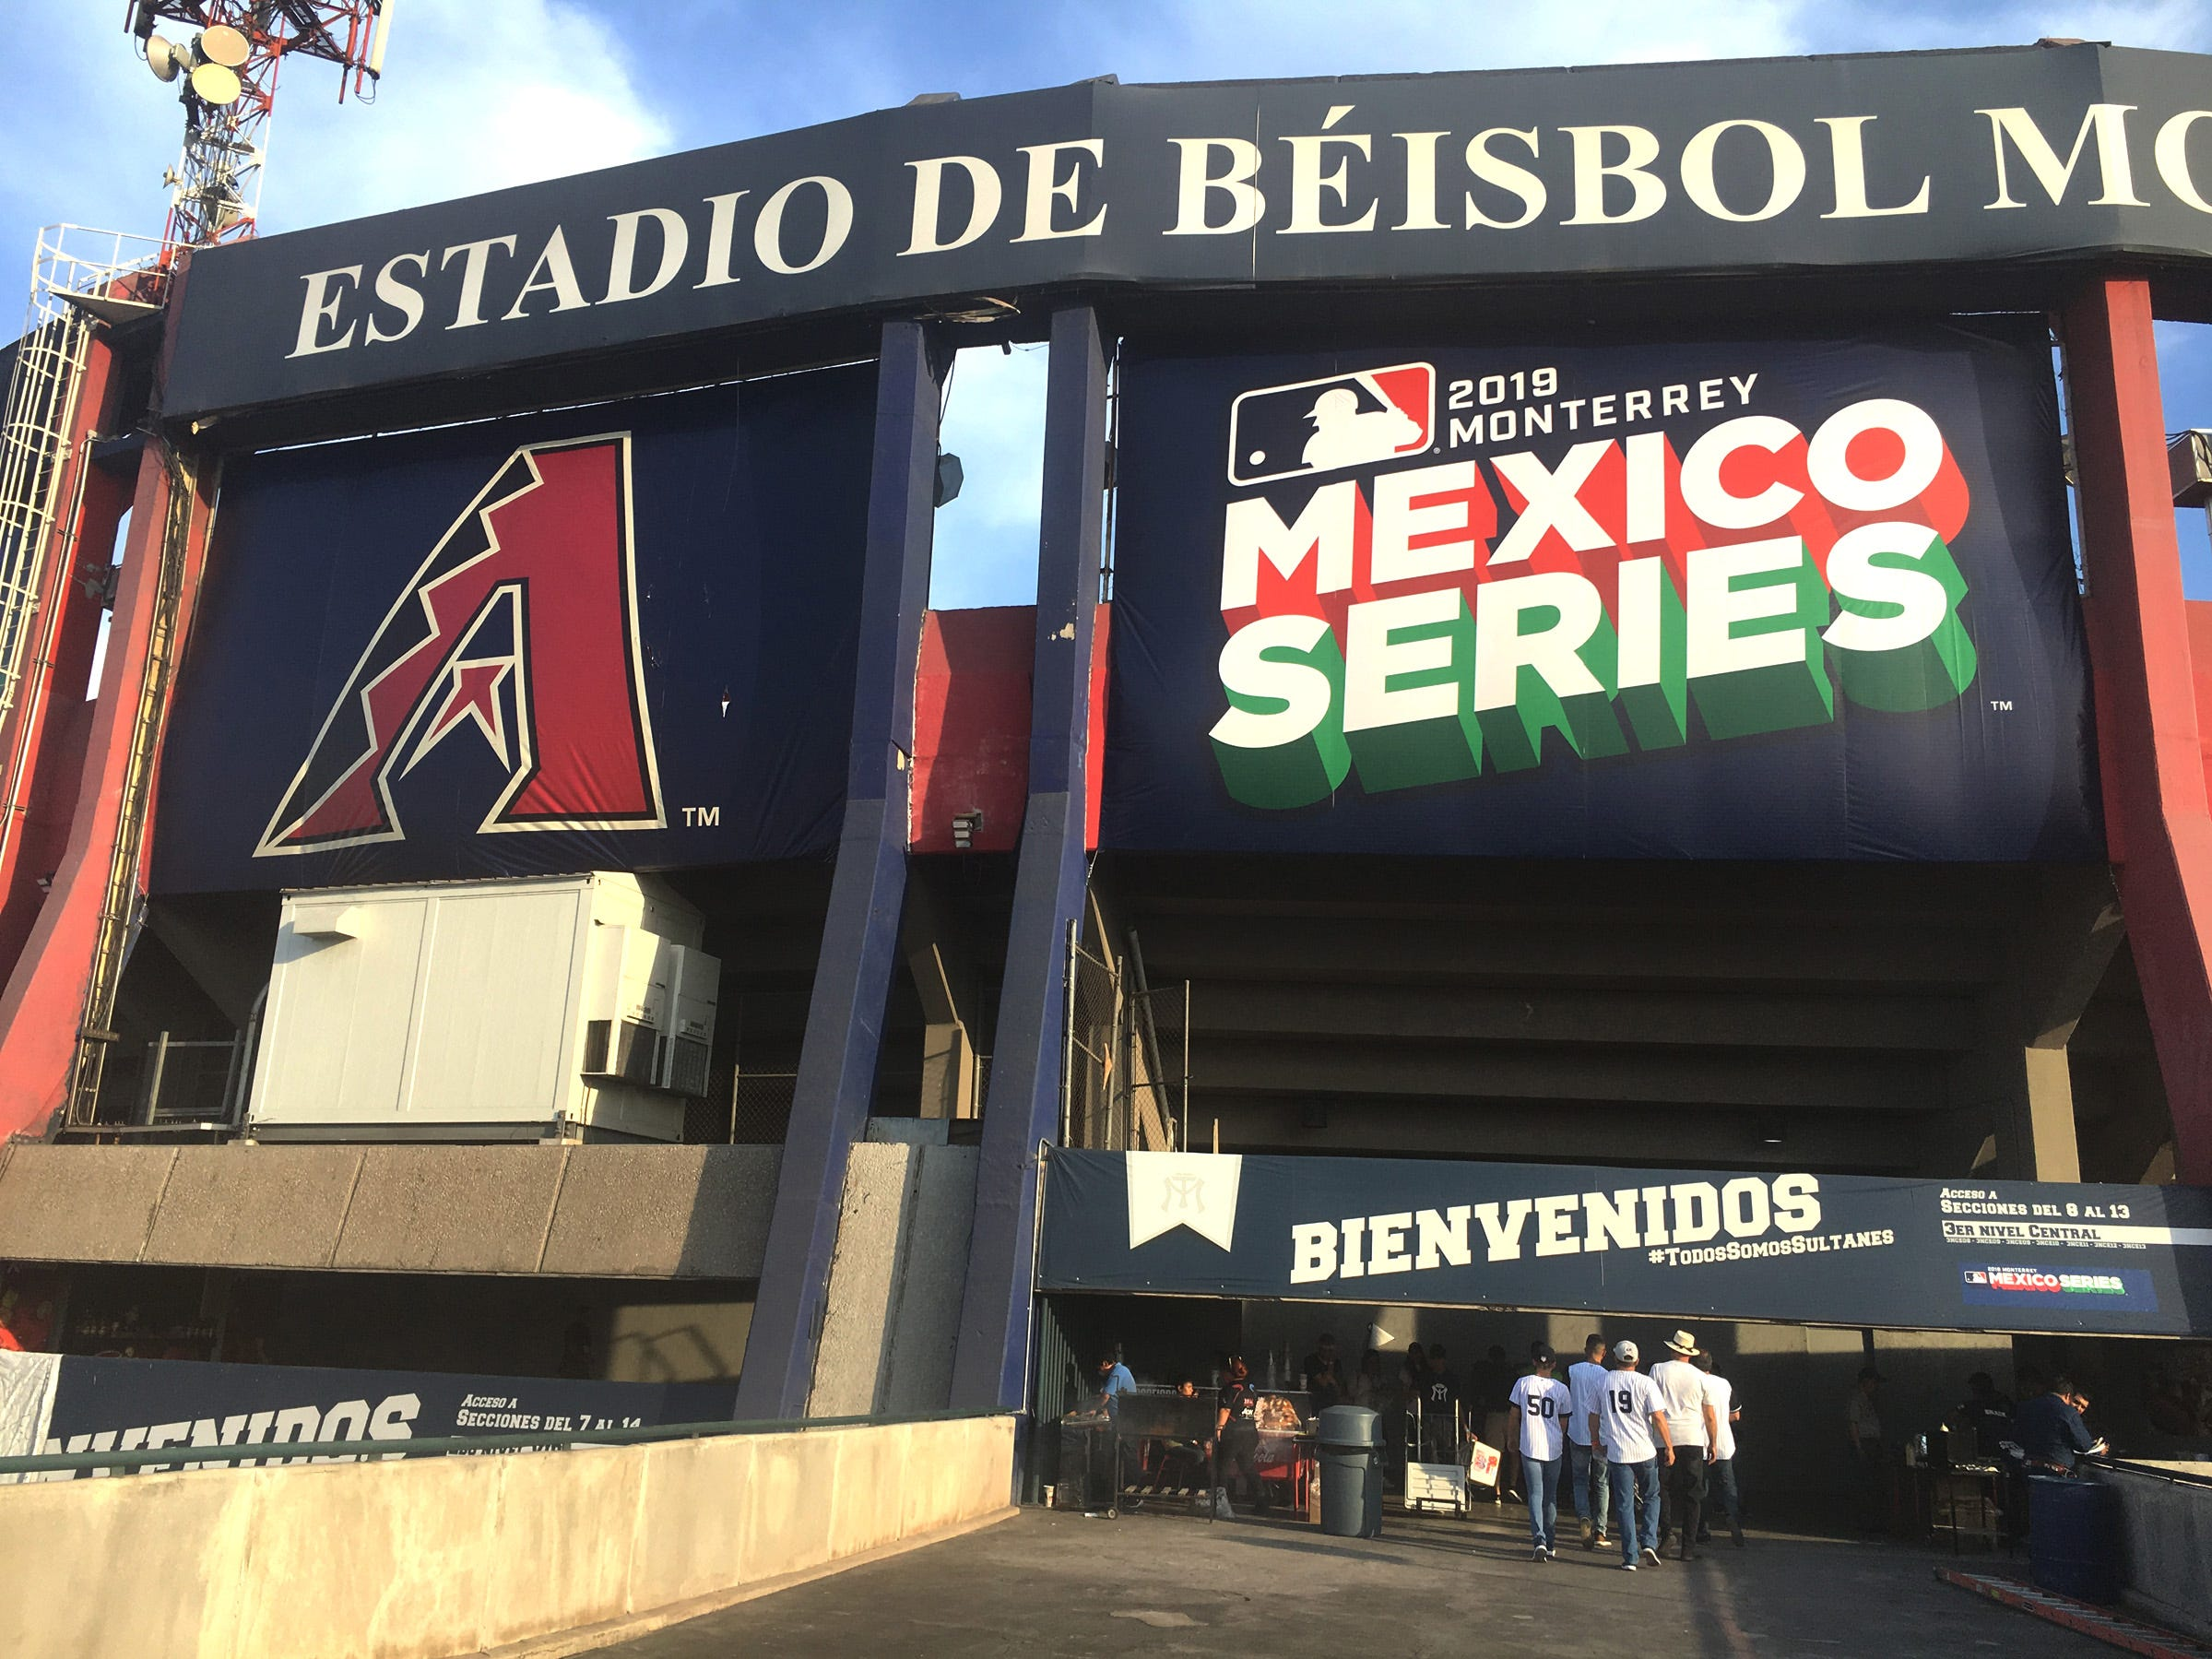 The Arizona Diamondbacks and the Colorado Rockies played two spring training games in the Estadio de Beisbol in Monterrey, Mexico. The 21,000-seat stadium is home to the Sultanes de Monterrey and is the largest in Mexico.